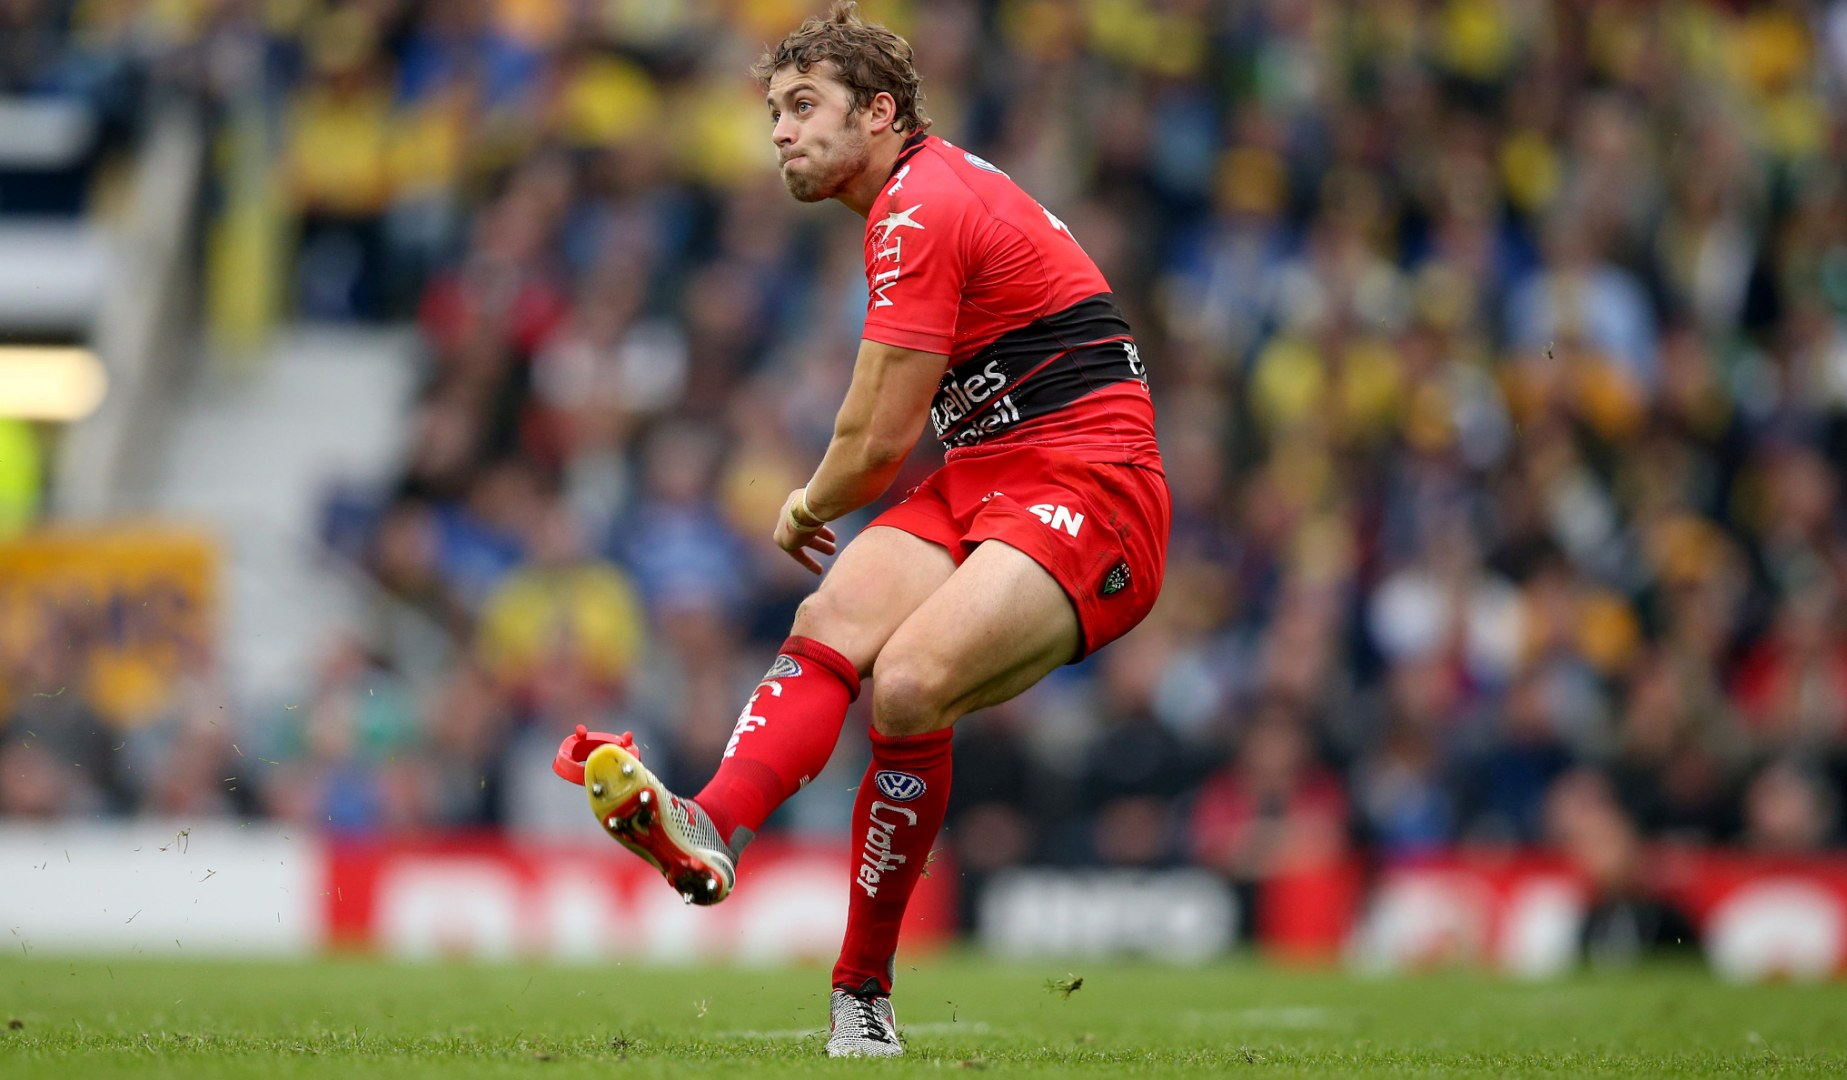 LionsWatch: Unerring Halfpenny excels as Toulon beat Scarlets.